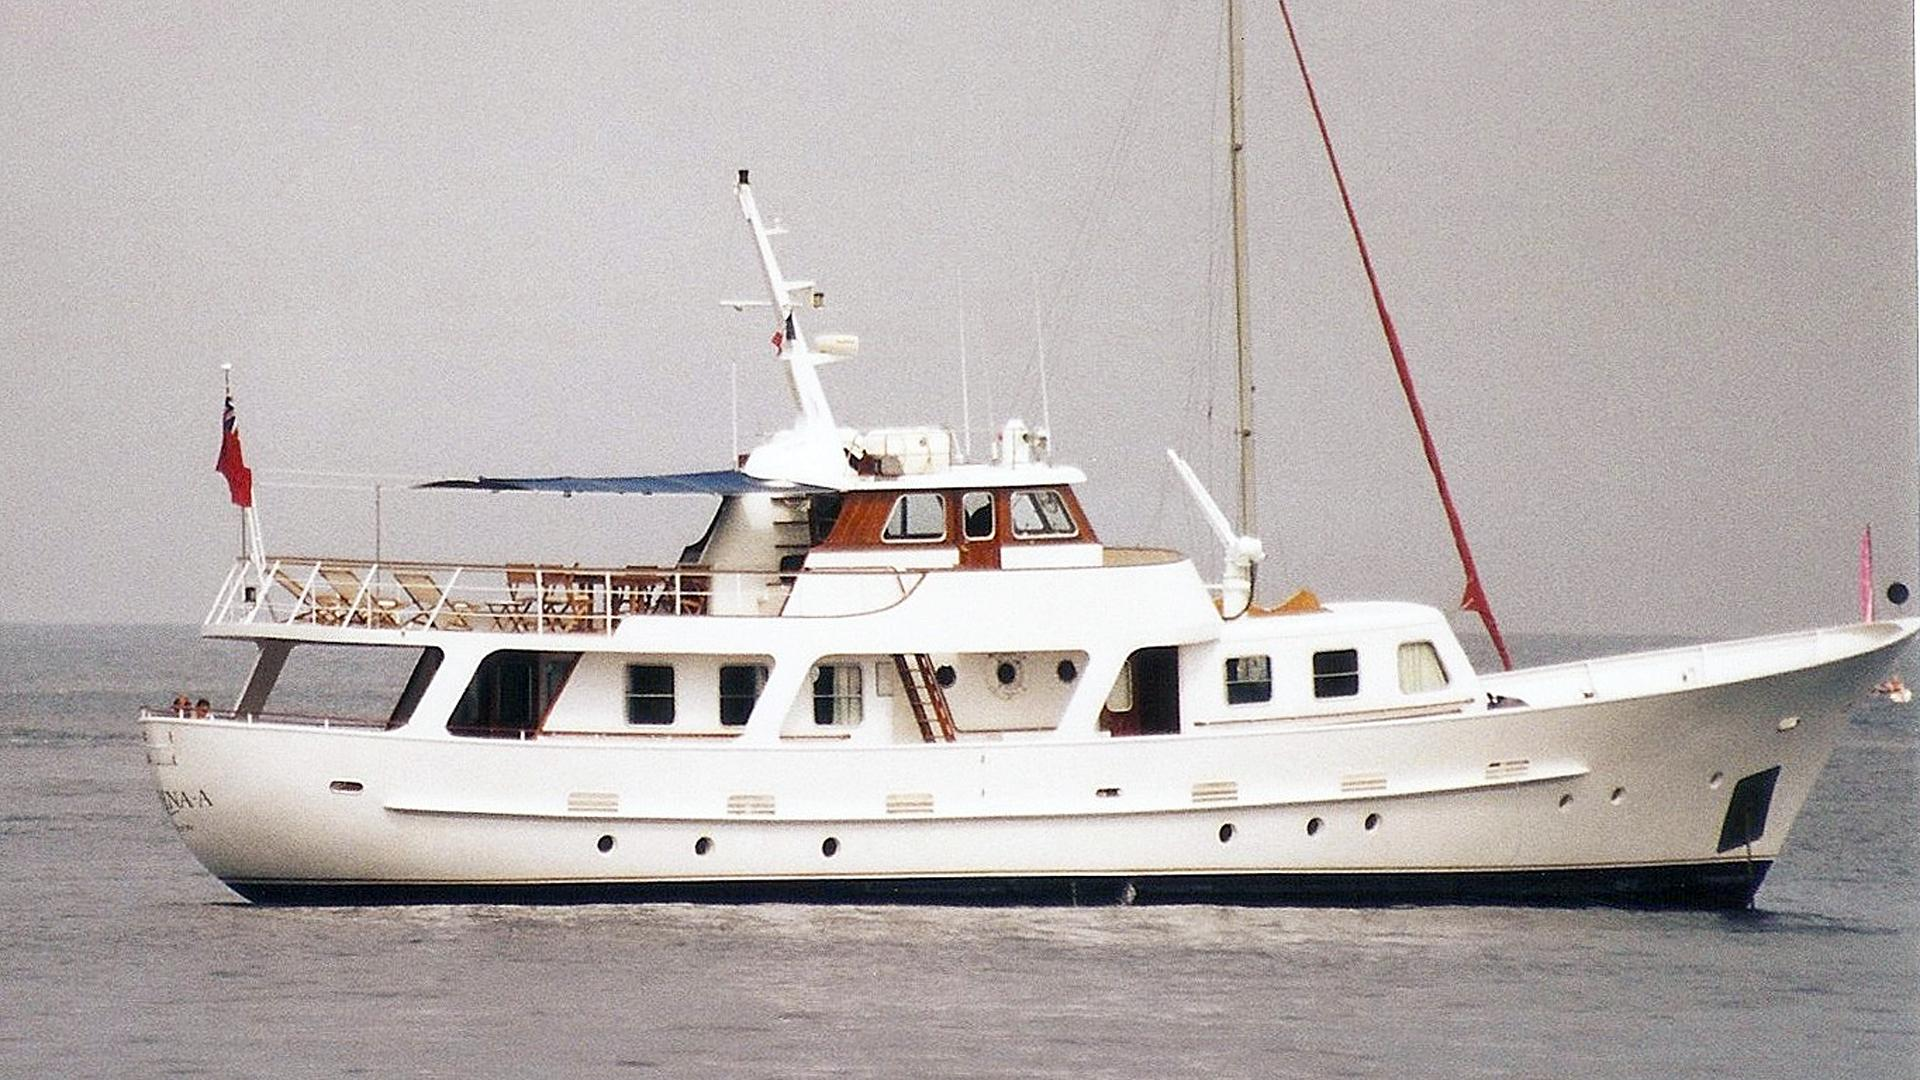 sirena-a-motor-yacht-cammenga-pacific-1970-26m-profile